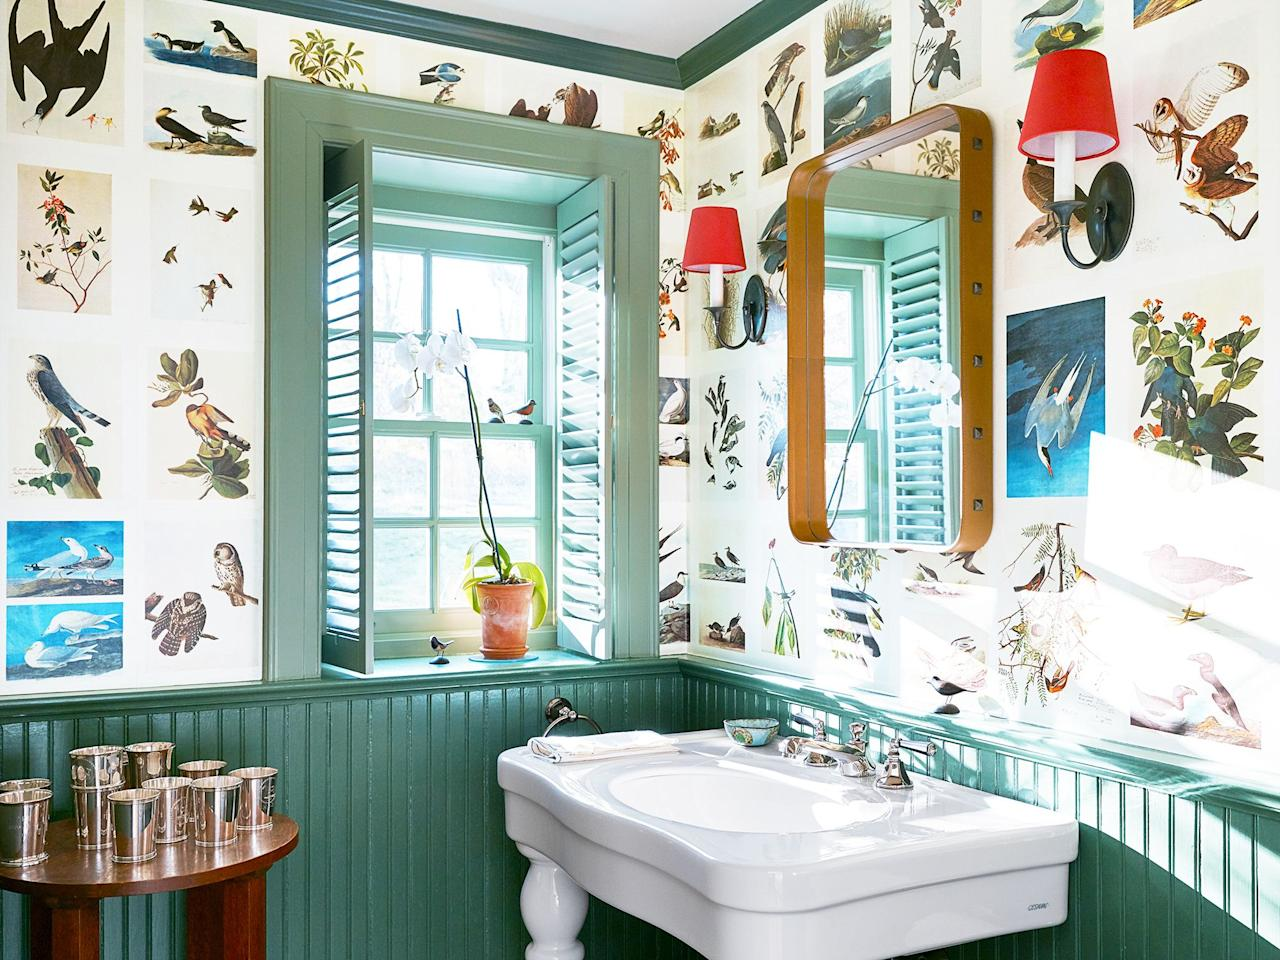 18 Best Paint Colors to Make Small Bathrooms Feel Bigger